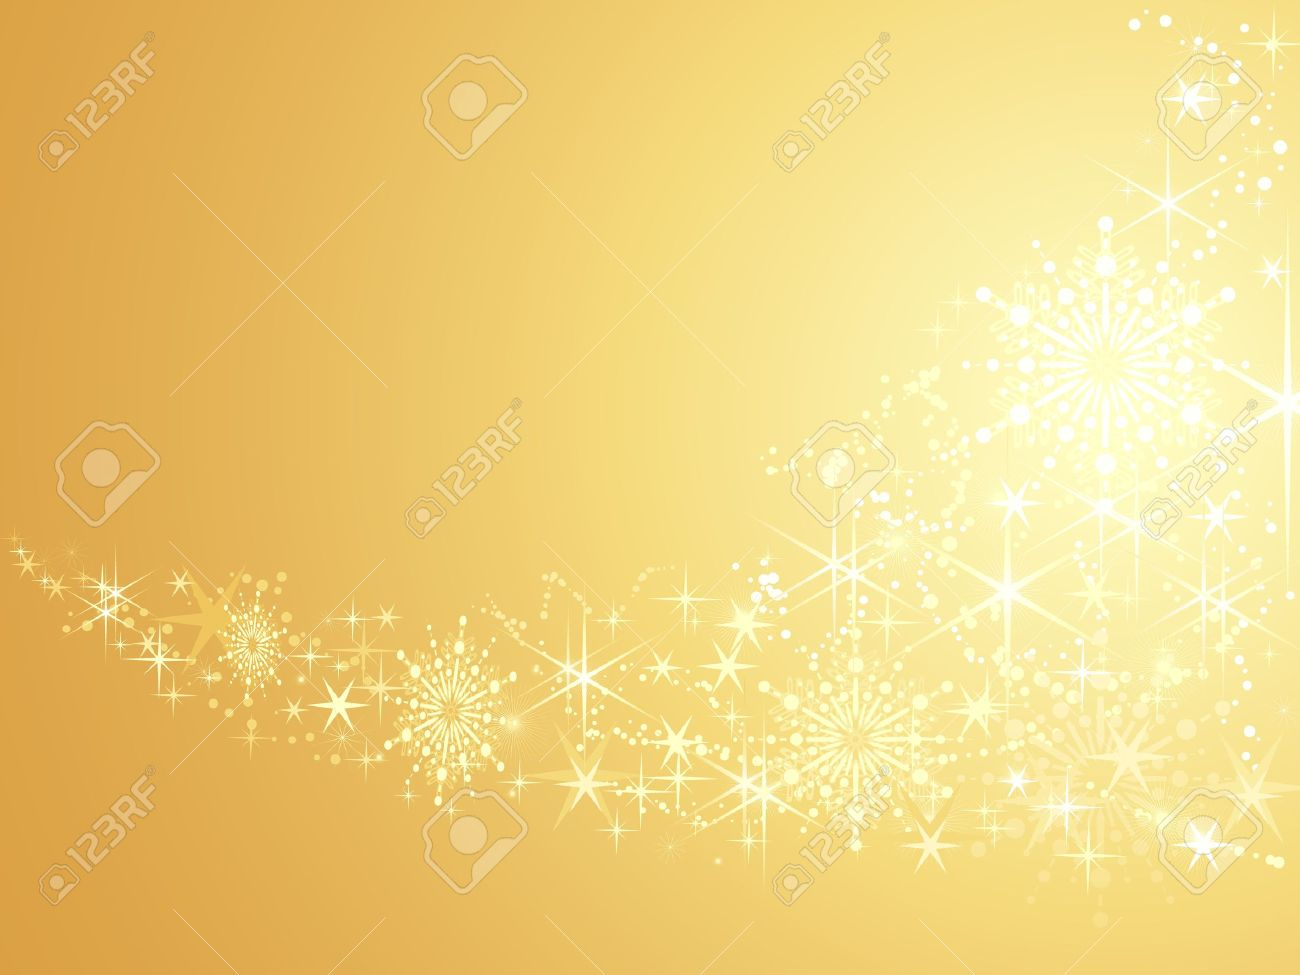 Abstract festive background with shiny stars and snow flakes. Artwork grouped and layered. Use of linear and radial gradients, global color swatches. Stock Vector - 5997897